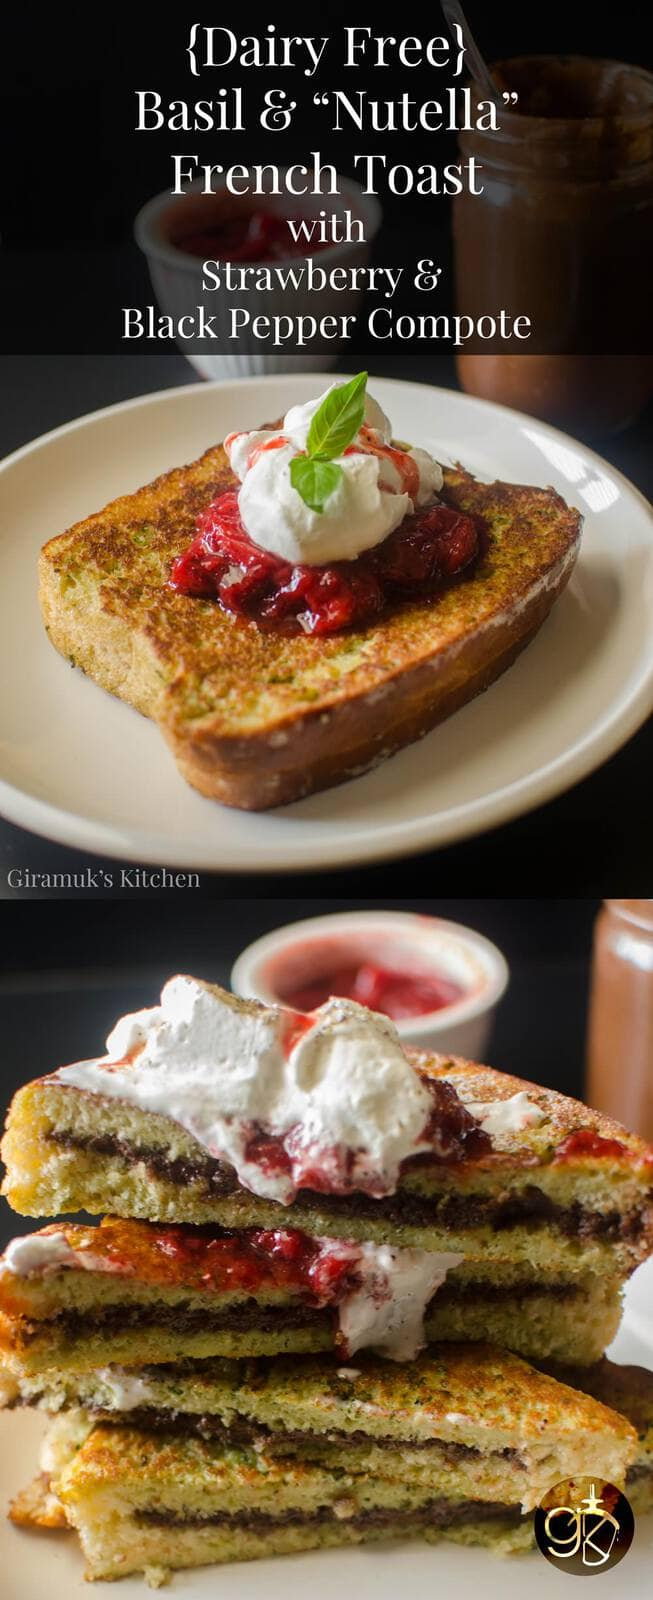 "Dairy Free Basil and Nutella French Toast with Strawberry Black Pepper Compote - French toast made with Dairy Free Brioche stuffed with Dairy Free ""Nutella"" and dipped in a Basil Egg custard to make the perfect brunch! Delicious Dairy Free or Not!"